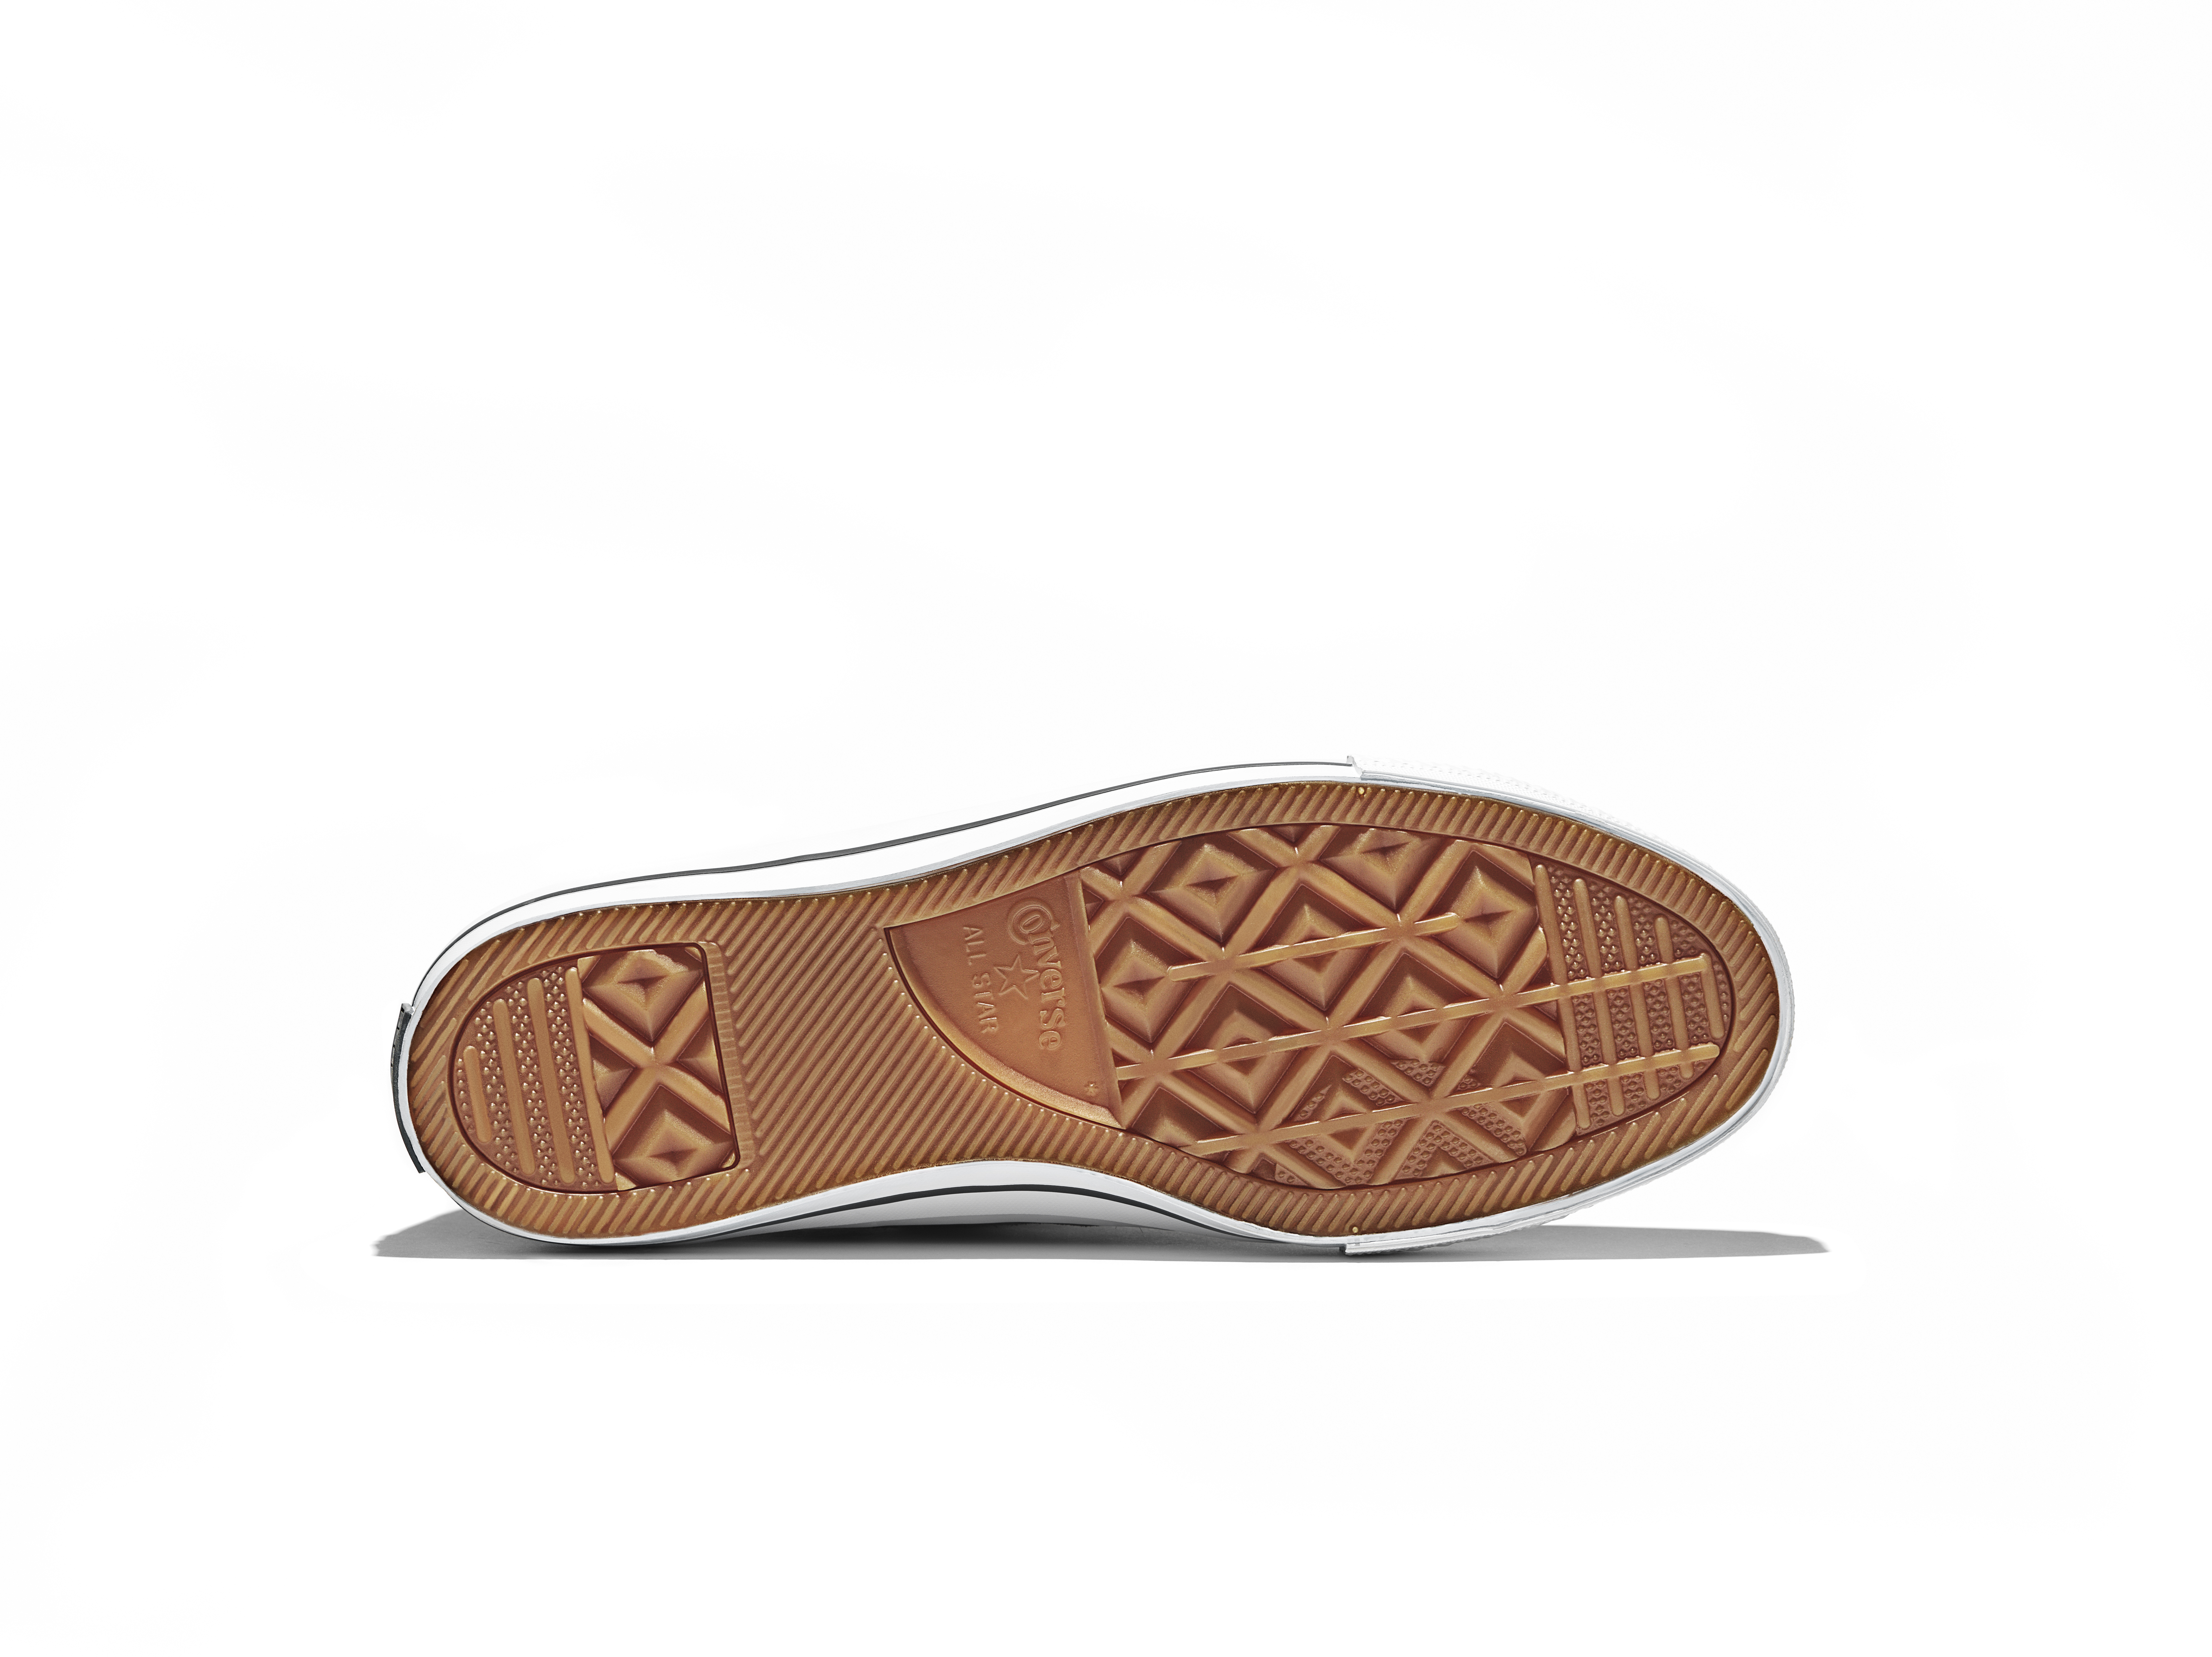 FH16_Cons_OneStarOx_LongHairSuede_Gray_Outsole_153962